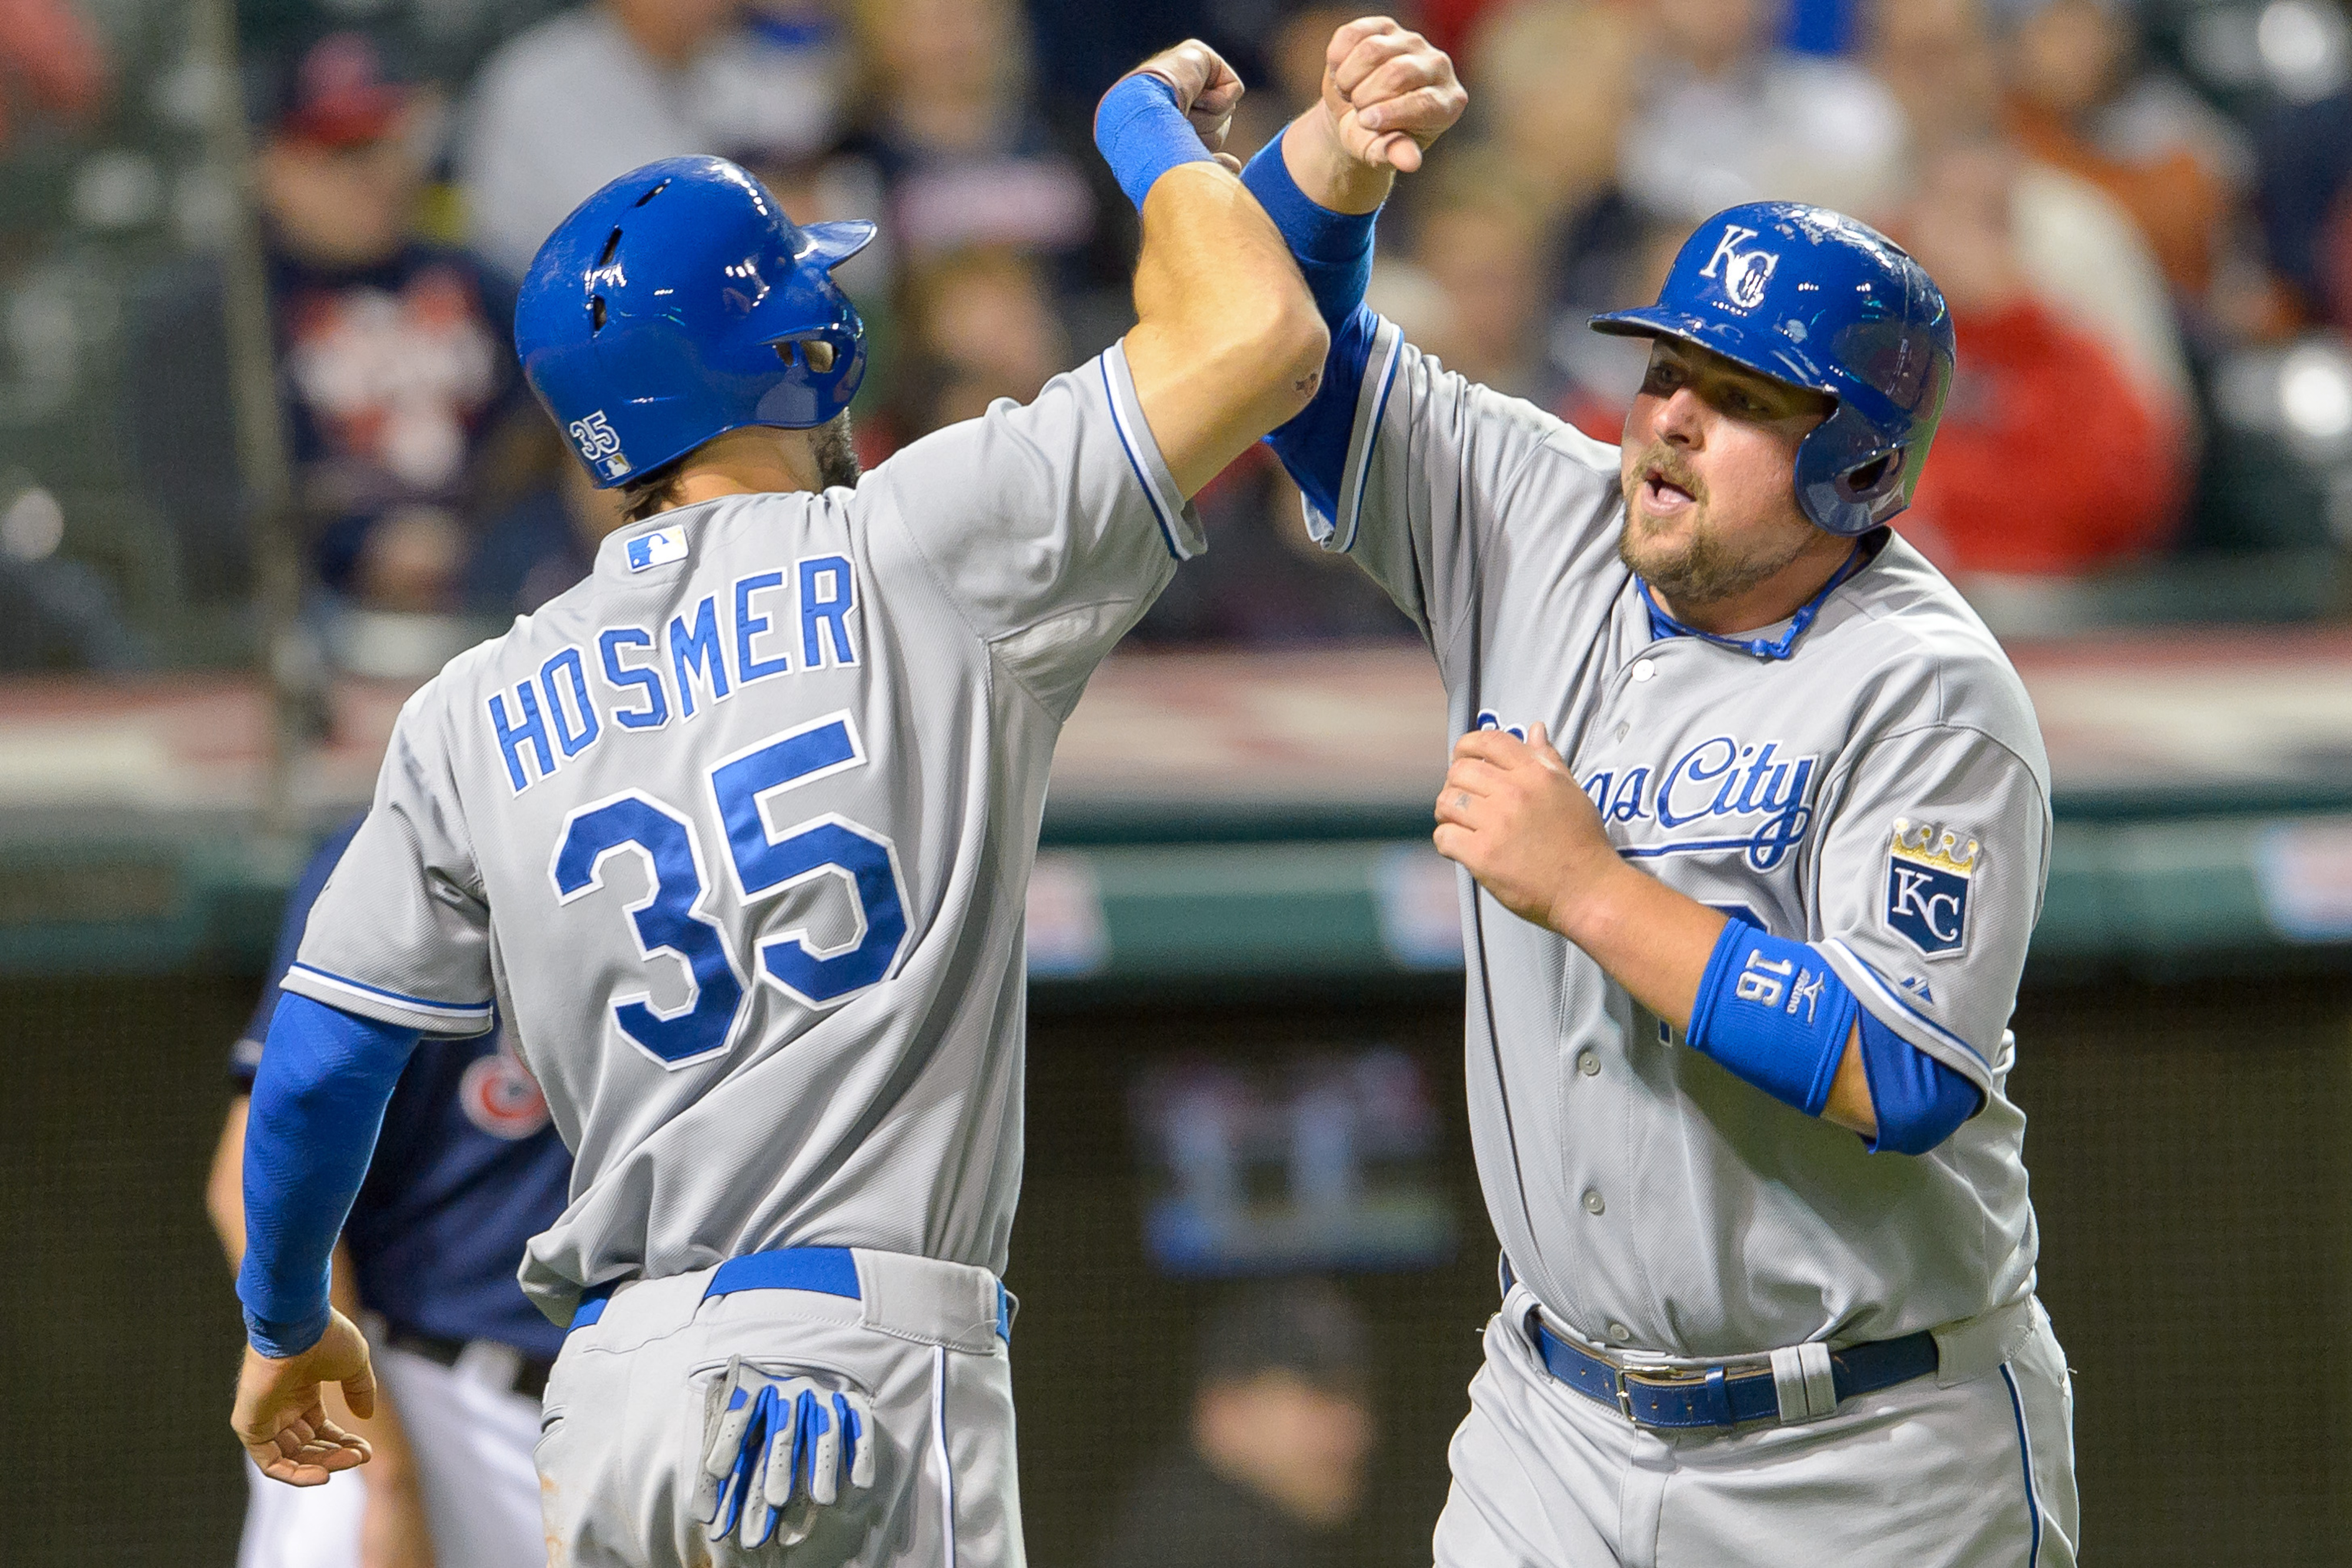 MLB Wednesday viewing guide: Royals could eliminate Indians, move into tie with Tigers